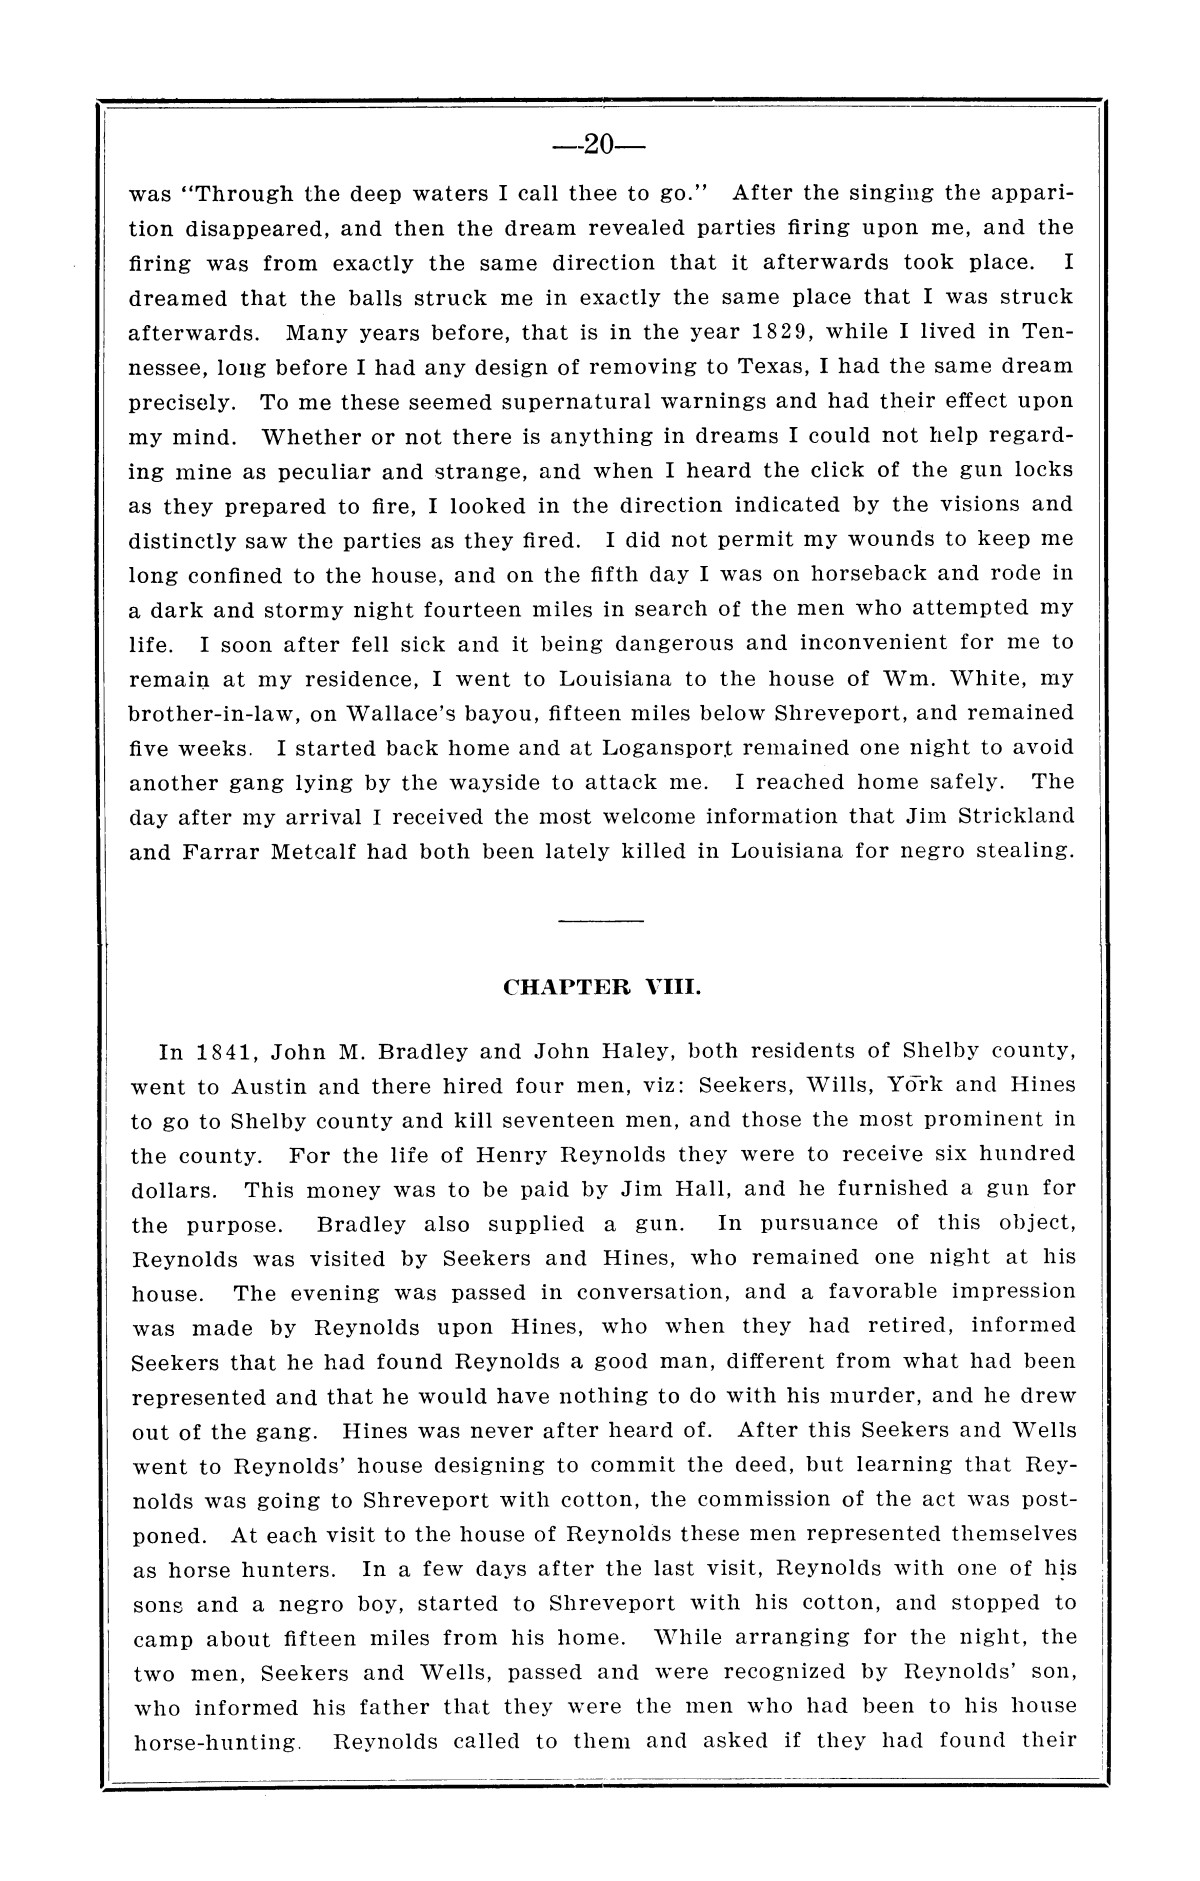 History of the regulators and moderators and the Shelby County war in 1841 and 1842, in the republic of Texas, with facts and incidents in the early history of the republic and state, from 1837 to the annexation, together with incidents of frontier life and Indian troubles, and the war on the reserve in Young County in 1857                                                                                                      [Sequence #]: 22 of 42